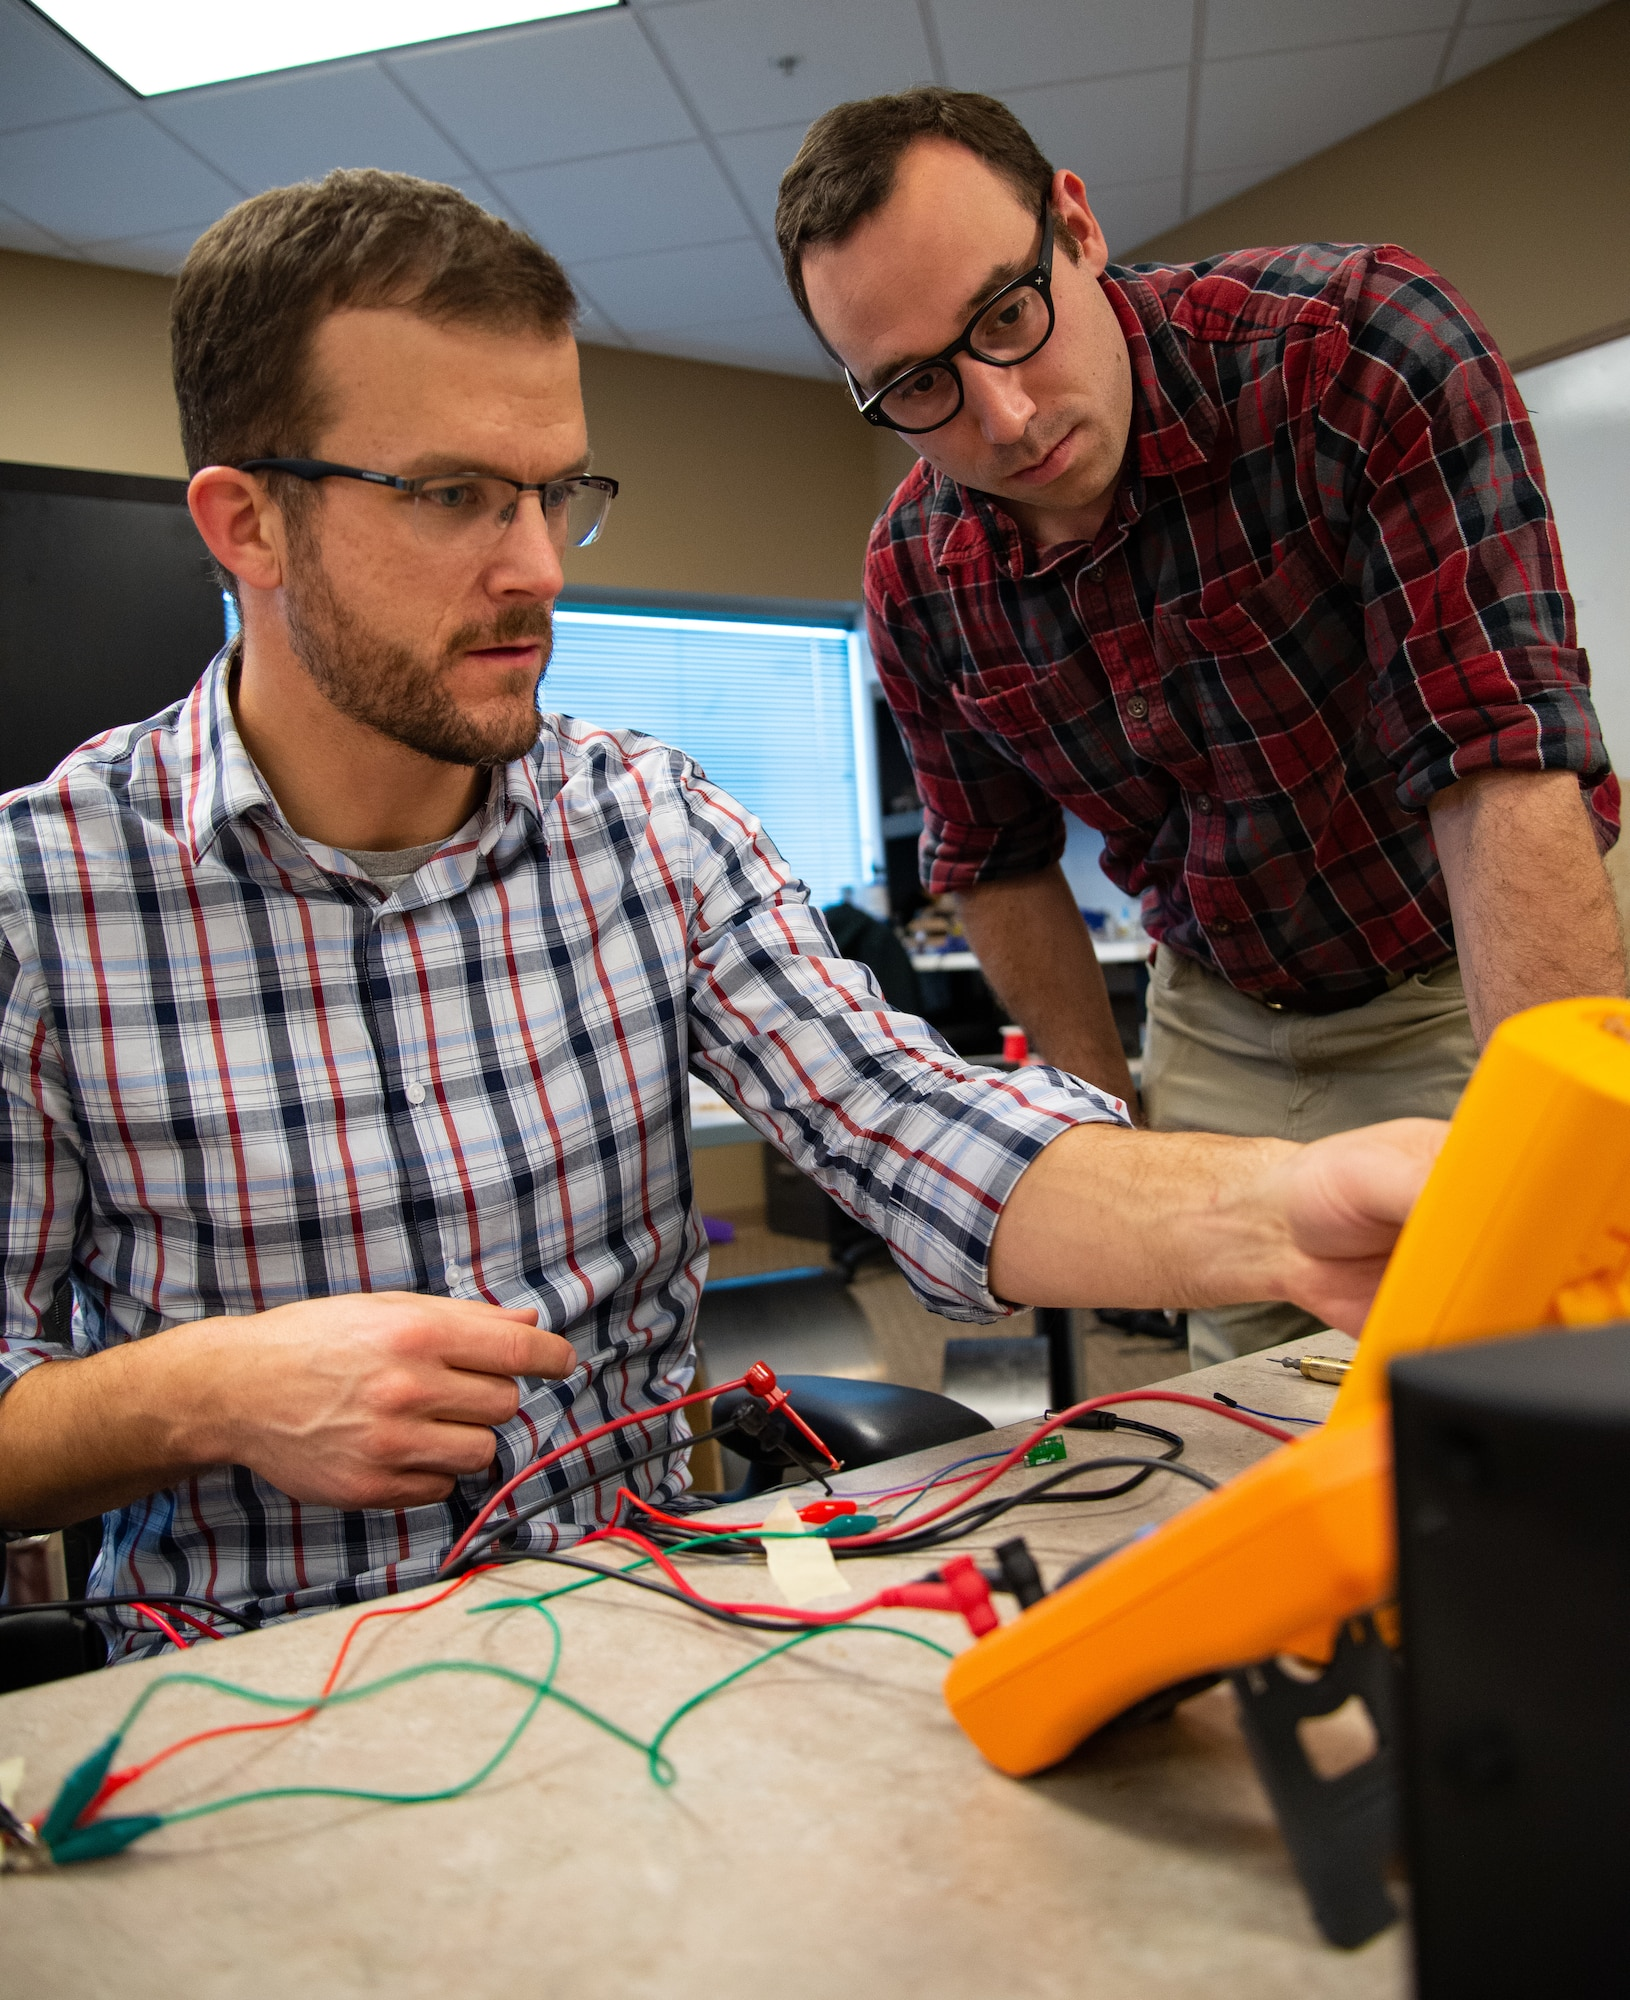 Joe Althaus, Wright Brothers Institute Rapid Innovation Program Manager (left), determines the power consumption of a piece of equipment as Isaac Weintraub, an electronics engineer with Air Force Research Laboratory's Aerospace Systems Directorate, observes during a rapid innovation session at AFRL's Maker Hub.